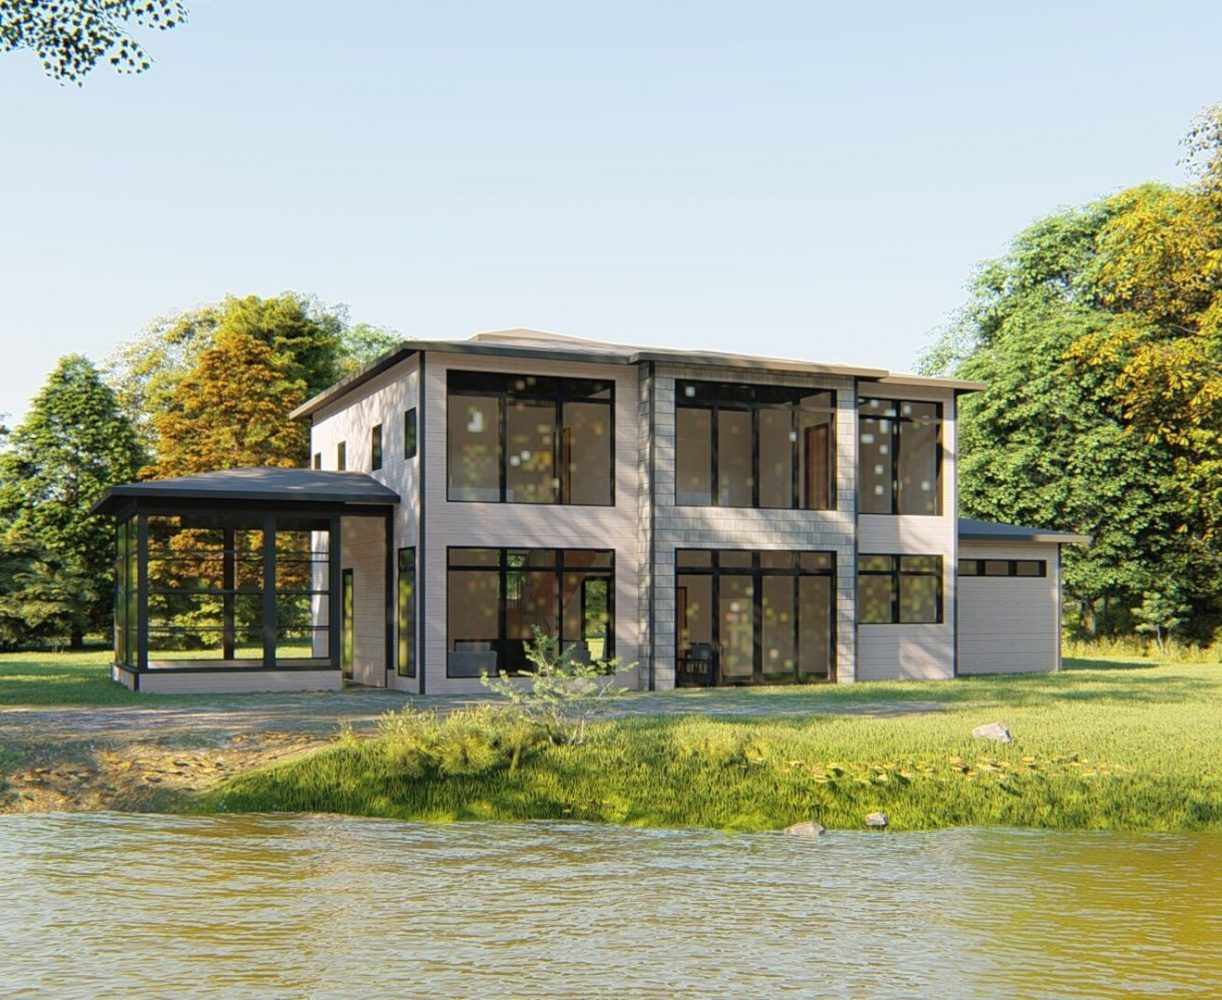 A Contemporary and modern Muskoka cottage rendering by PattyMac and Spencer Douglas